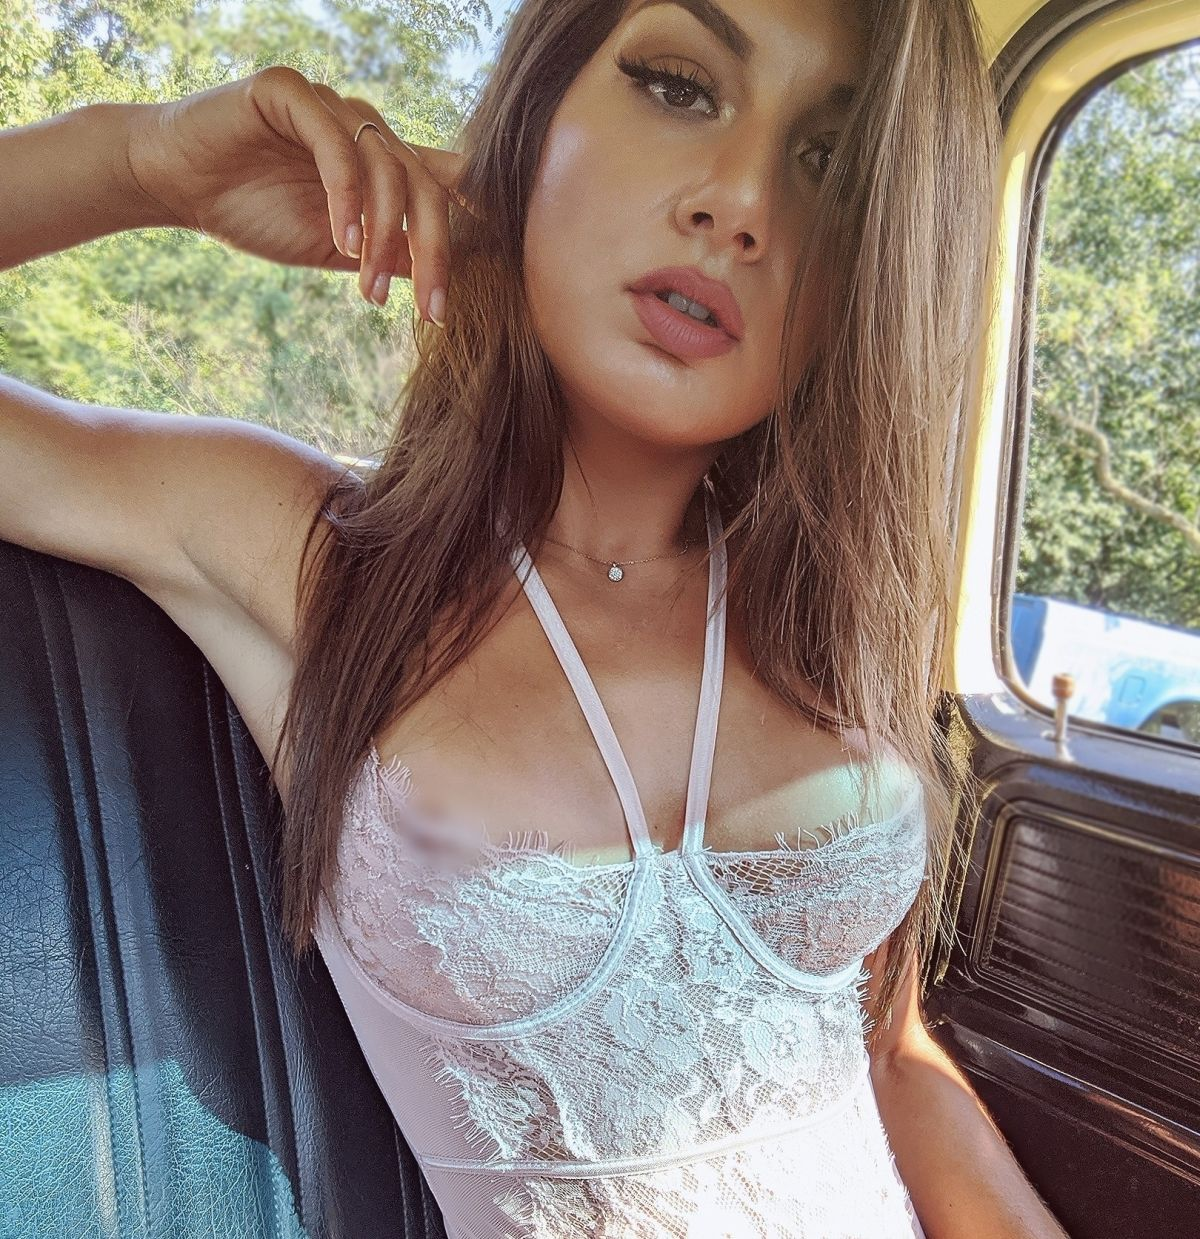 Onlyfans free Nellymarie onlyfans leaked